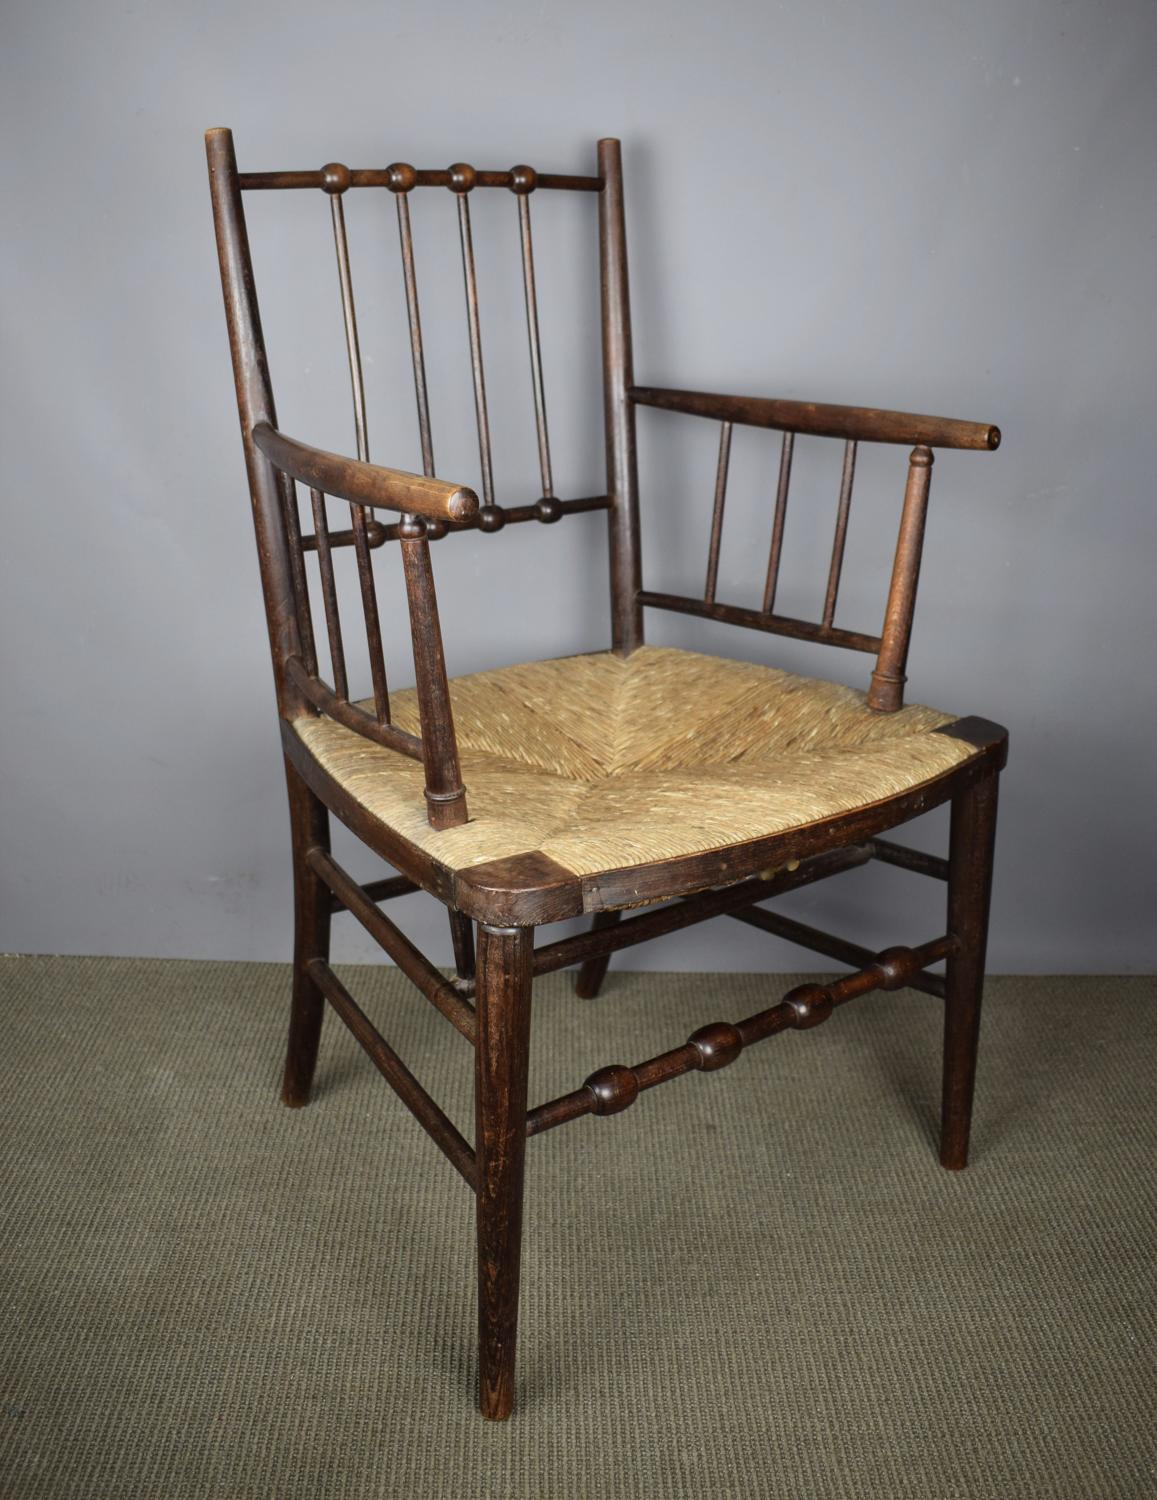 Arts & Crafts Sussex Chair in the Manner of Morris & Co.